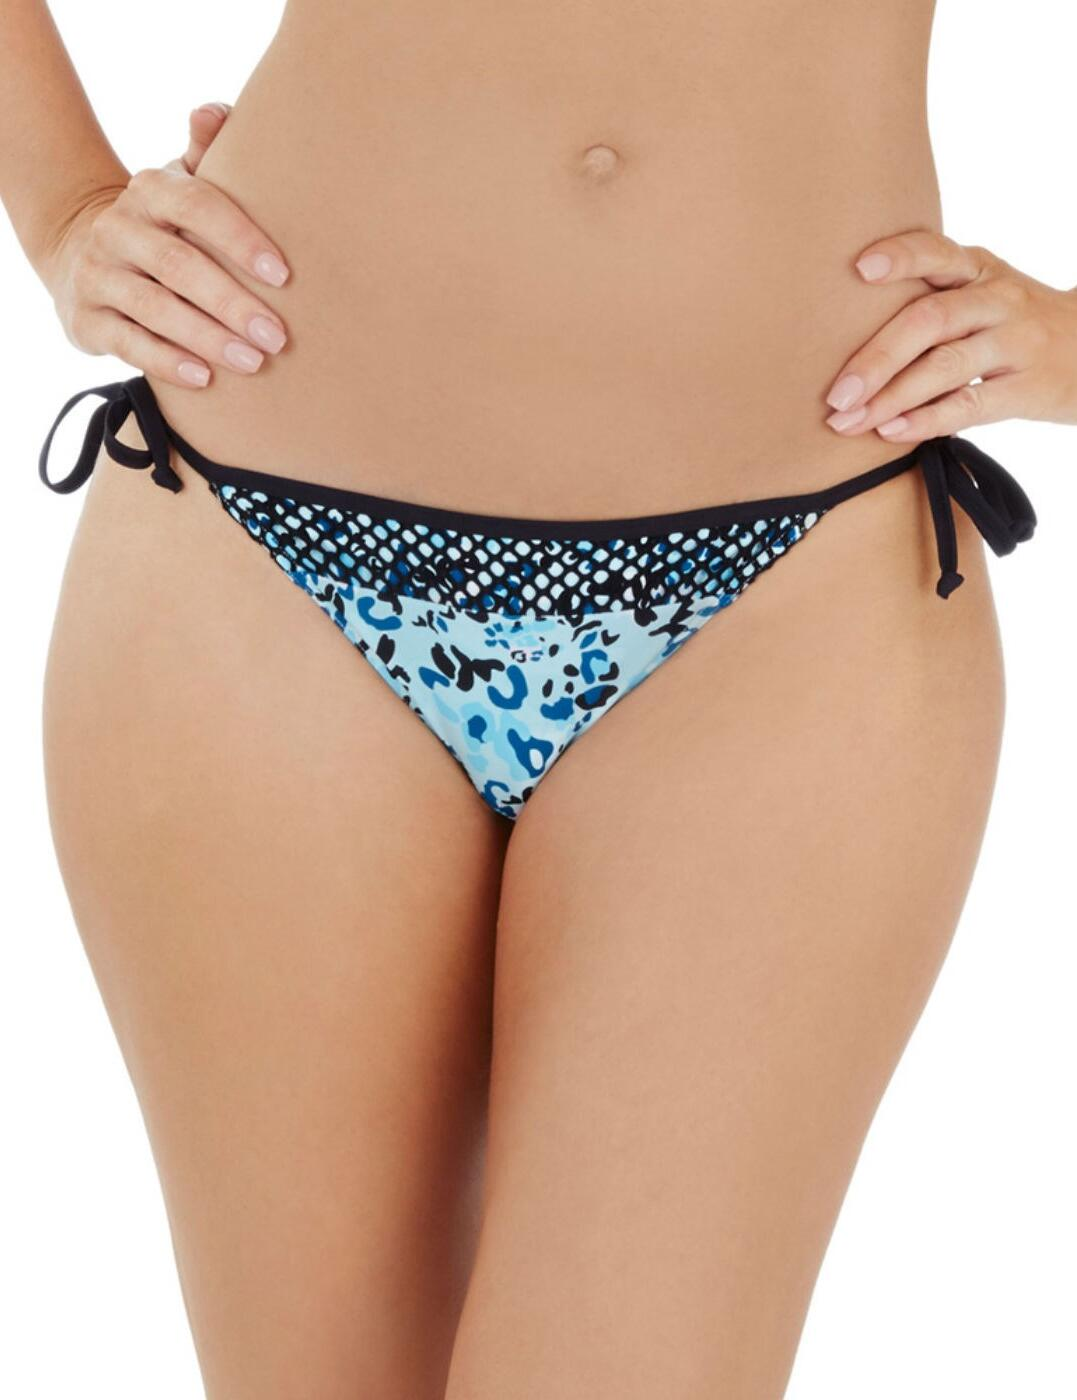 1684720 Lepel Adventure Bay Tie Side Bikini Brief - 1569720 Tie side Brief